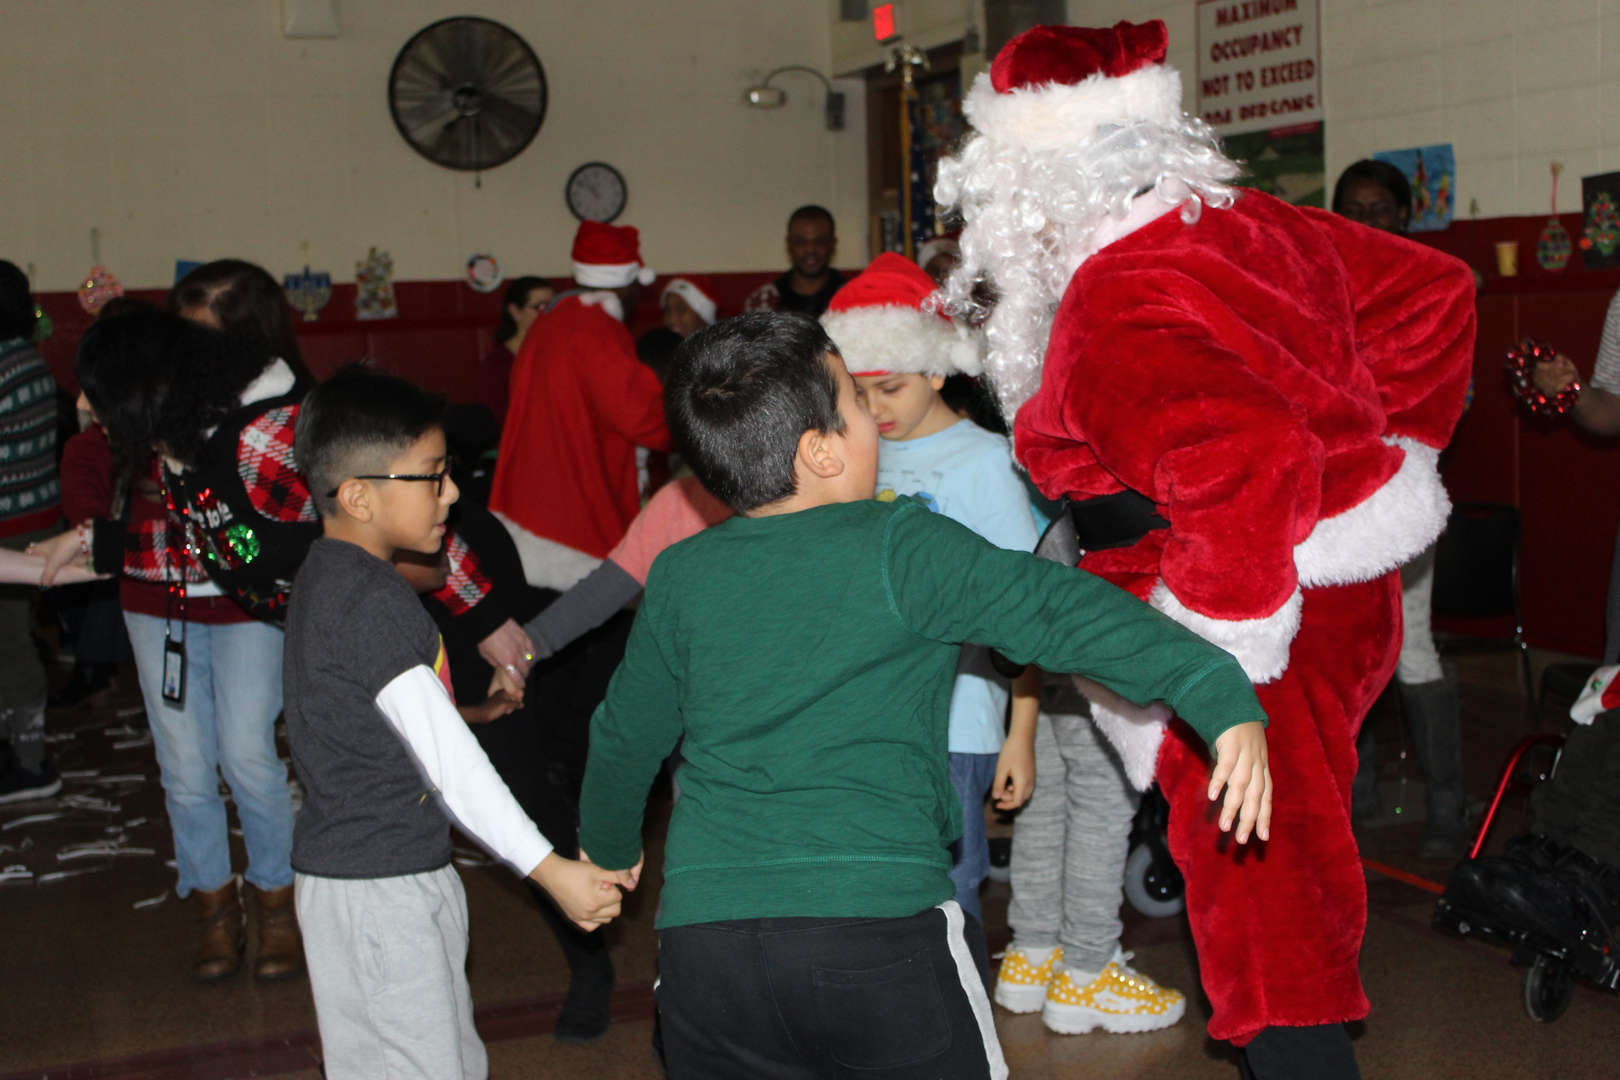 Students dance with Santa Claus at the Tappan Hill School holiday concert.